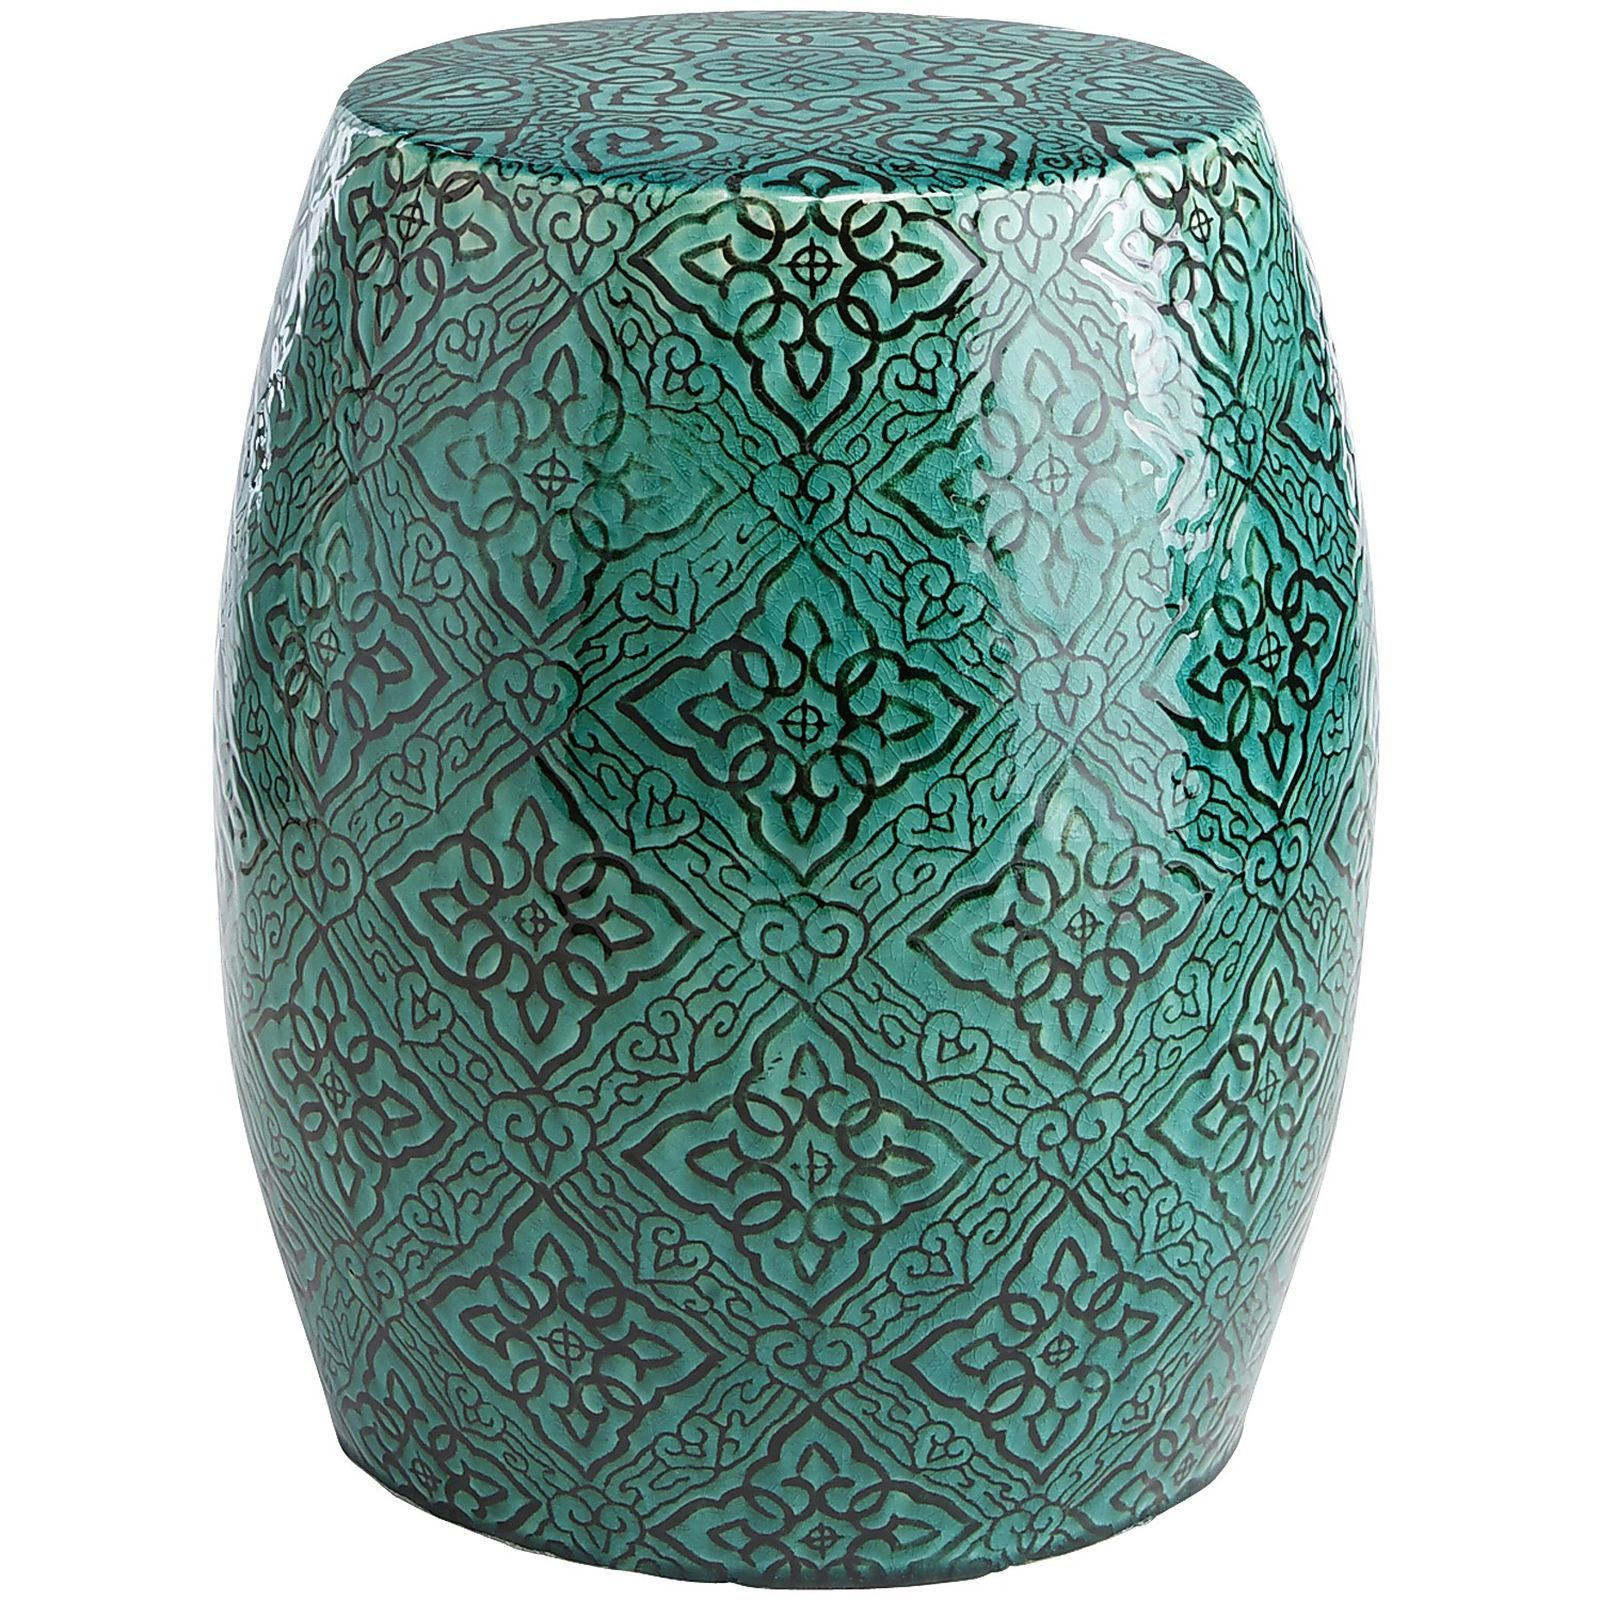 Groovy Mediterranean Tile Garden Stool At Pier 1 Imports Garden Ocoug Best Dining Table And Chair Ideas Images Ocougorg